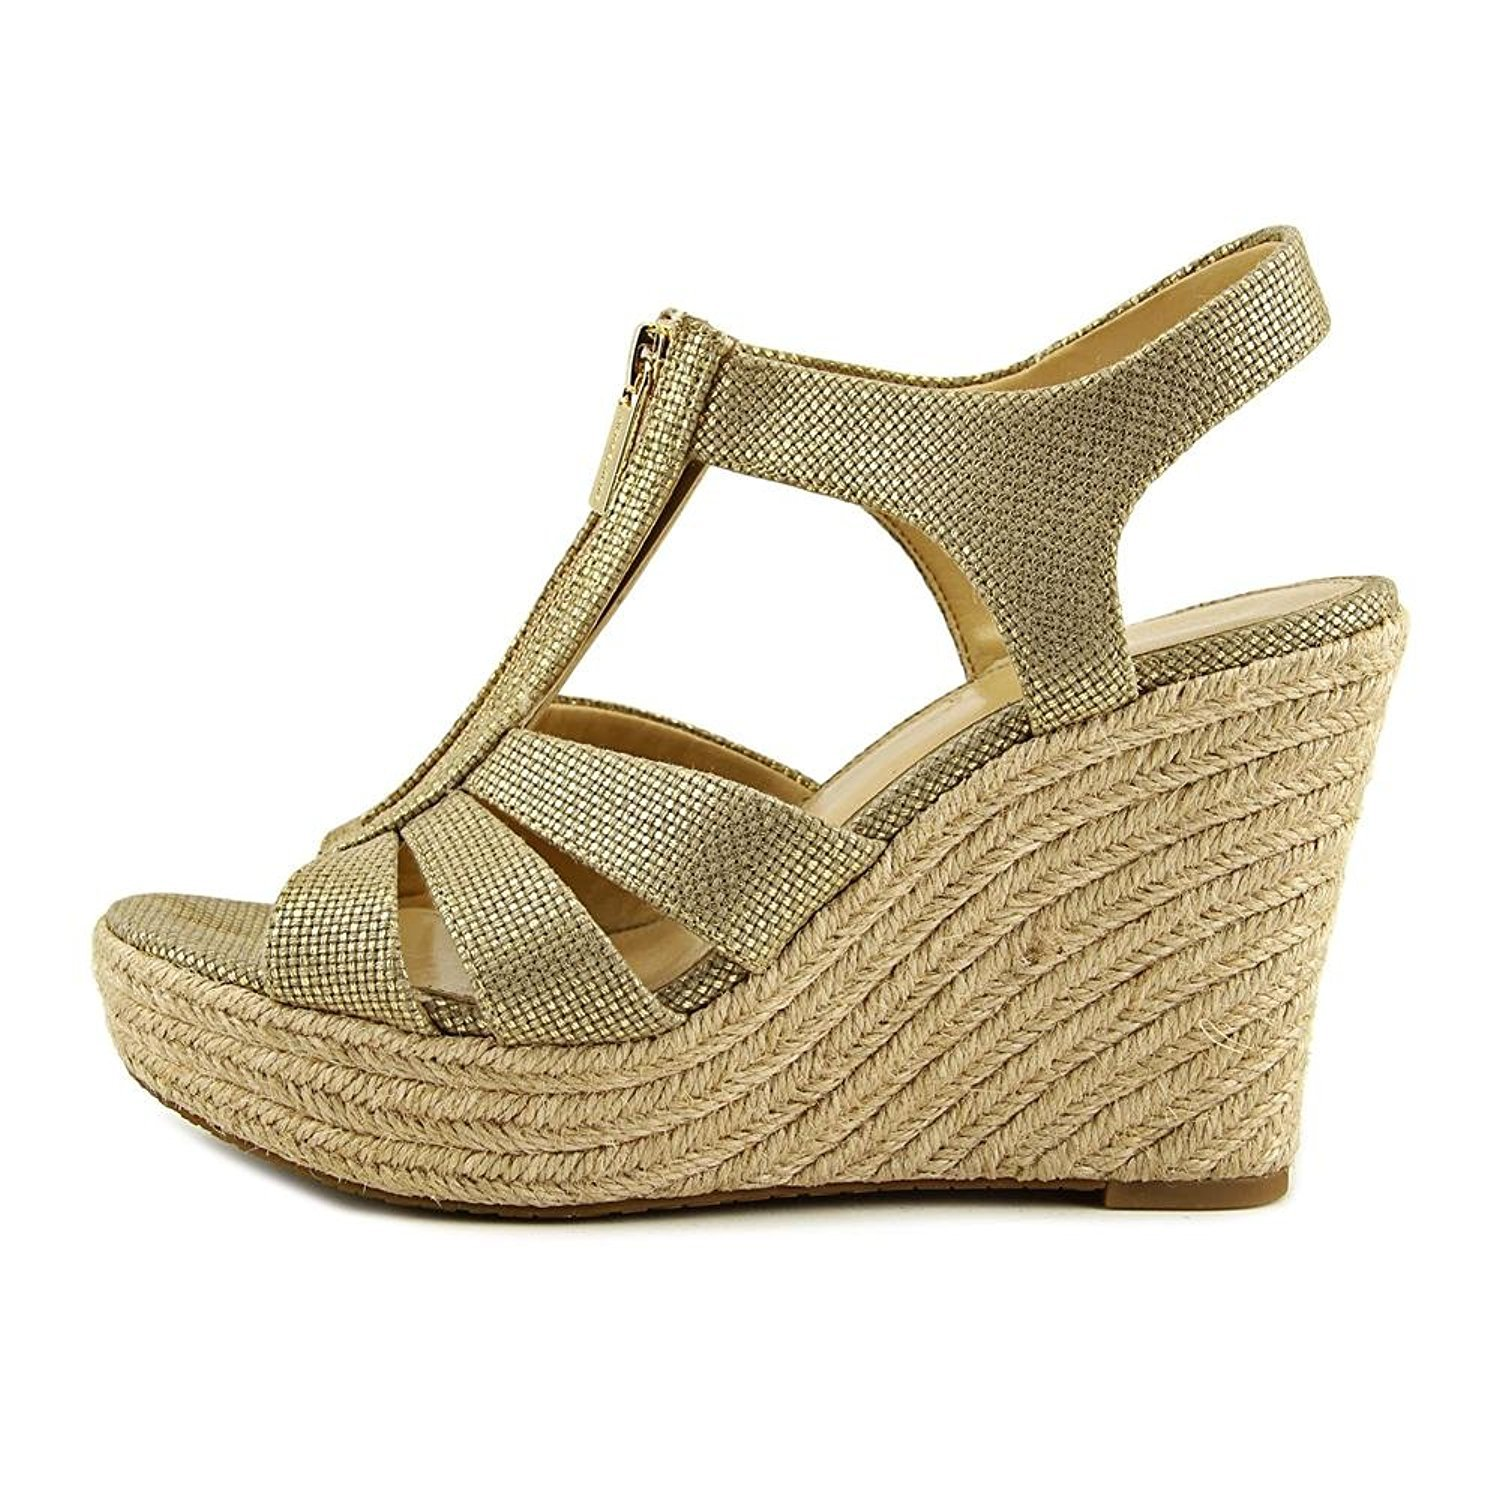 979698a3d410 Michael Kors Berkley Pale Gold Leather Wedge Sandals 41 Gold Fabric   Amazon.co.uk  Shoes   Bags